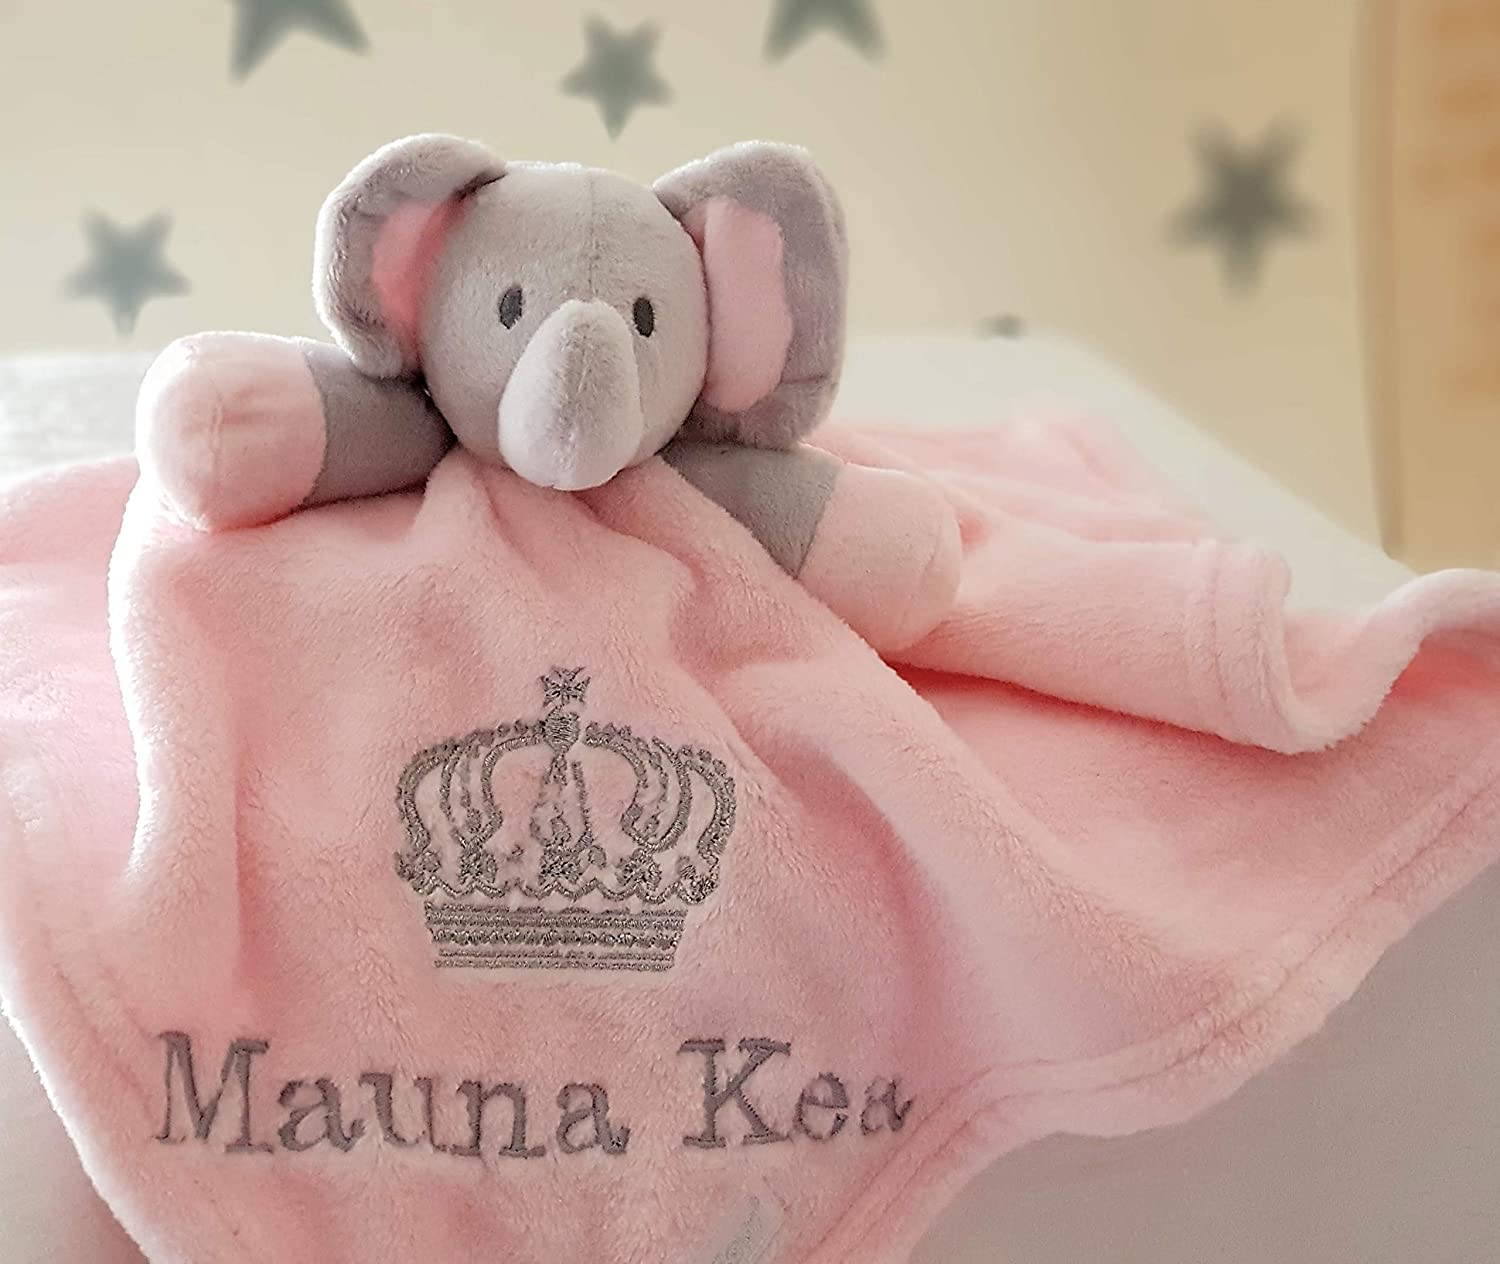 Personalised Pink Elephant Comforter Blanket / Soother Blanket / Royal Crown Blanket / New Baby Gift / Personalised Comforter